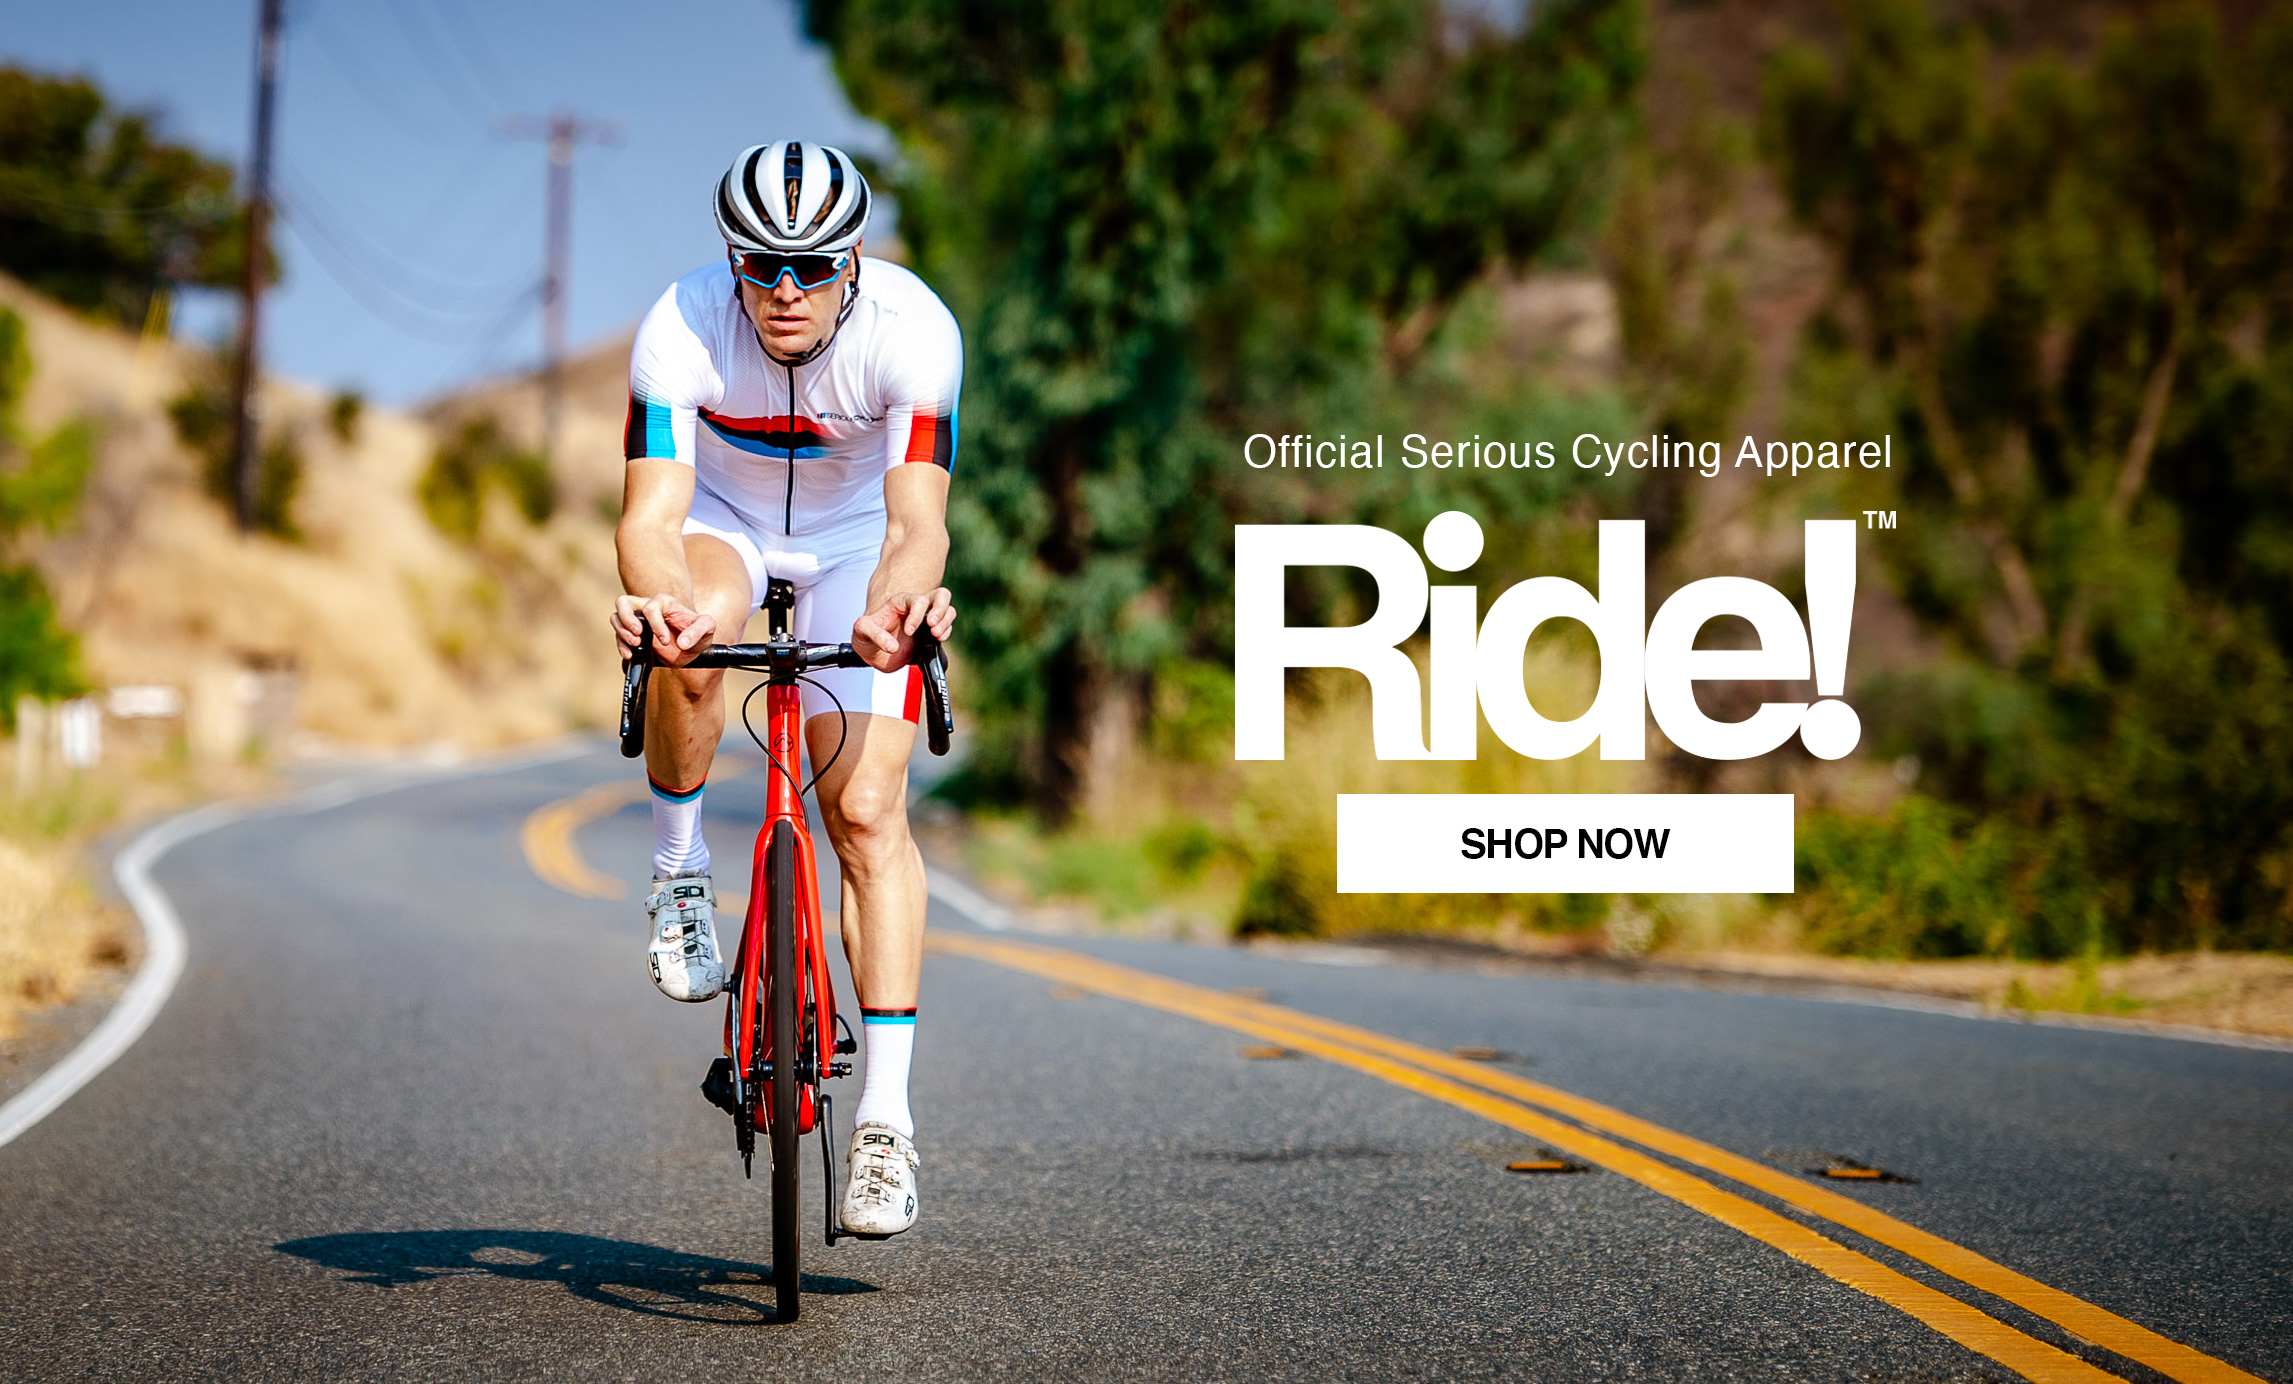 Official Serious Cycling Apparel. Ride! Shop Now